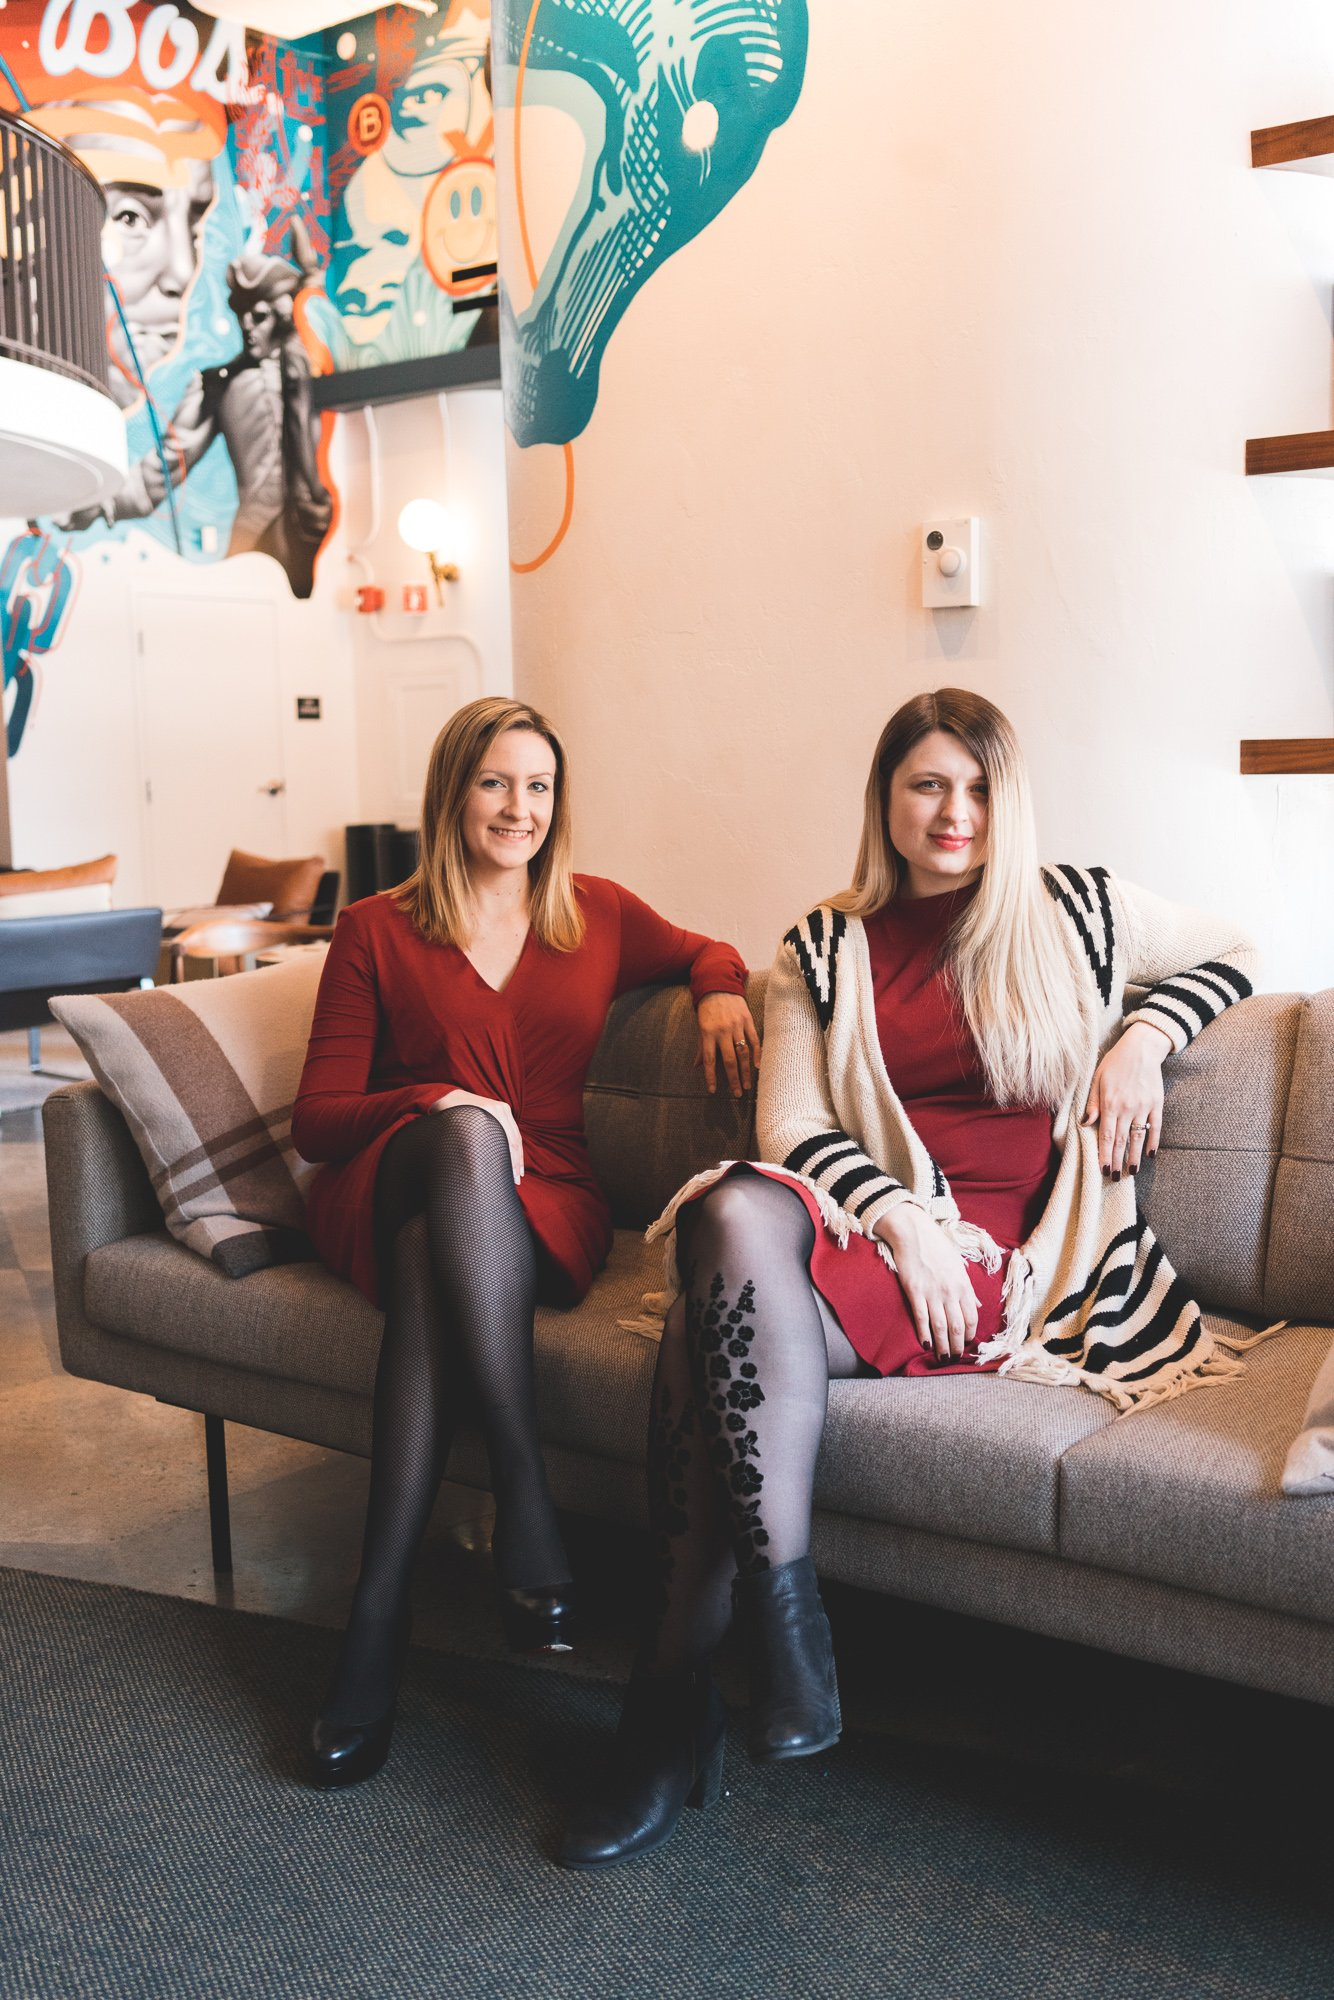 Anna and Vanessa, founders of Dough